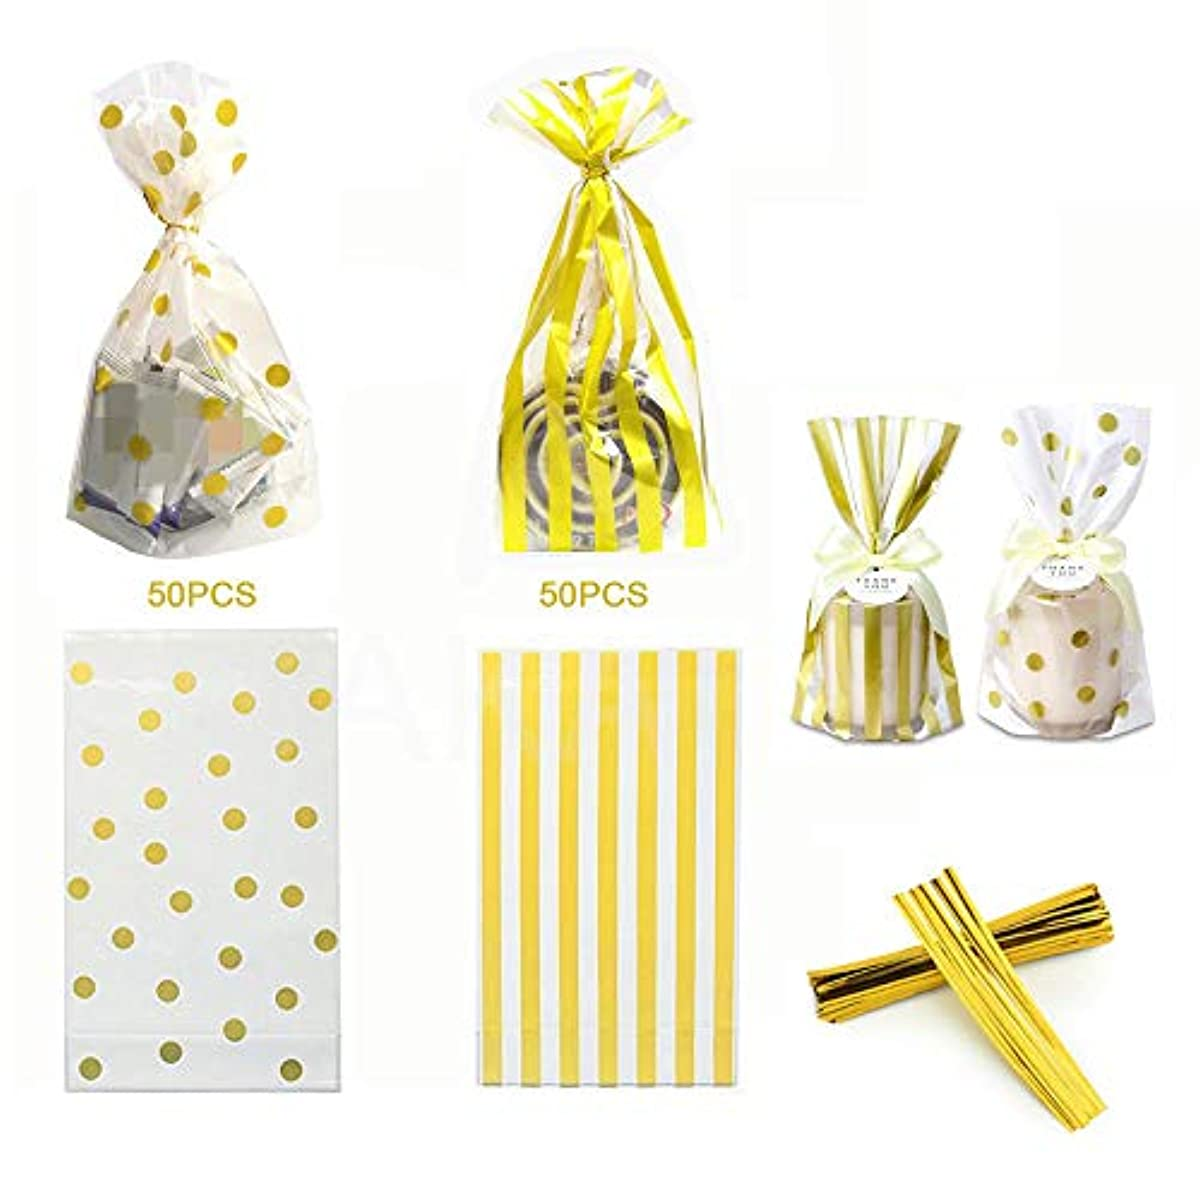 100 Pack Clear Cello Bags with Candy Cookie Bags 10 x 6 x 2.5 inch Clear Plastic Treat Bags Gold Polka Dot and Gold Stripe Candy Bags for Cookie Candy Snack Wrapping Party Favor with Gold Twist Ties